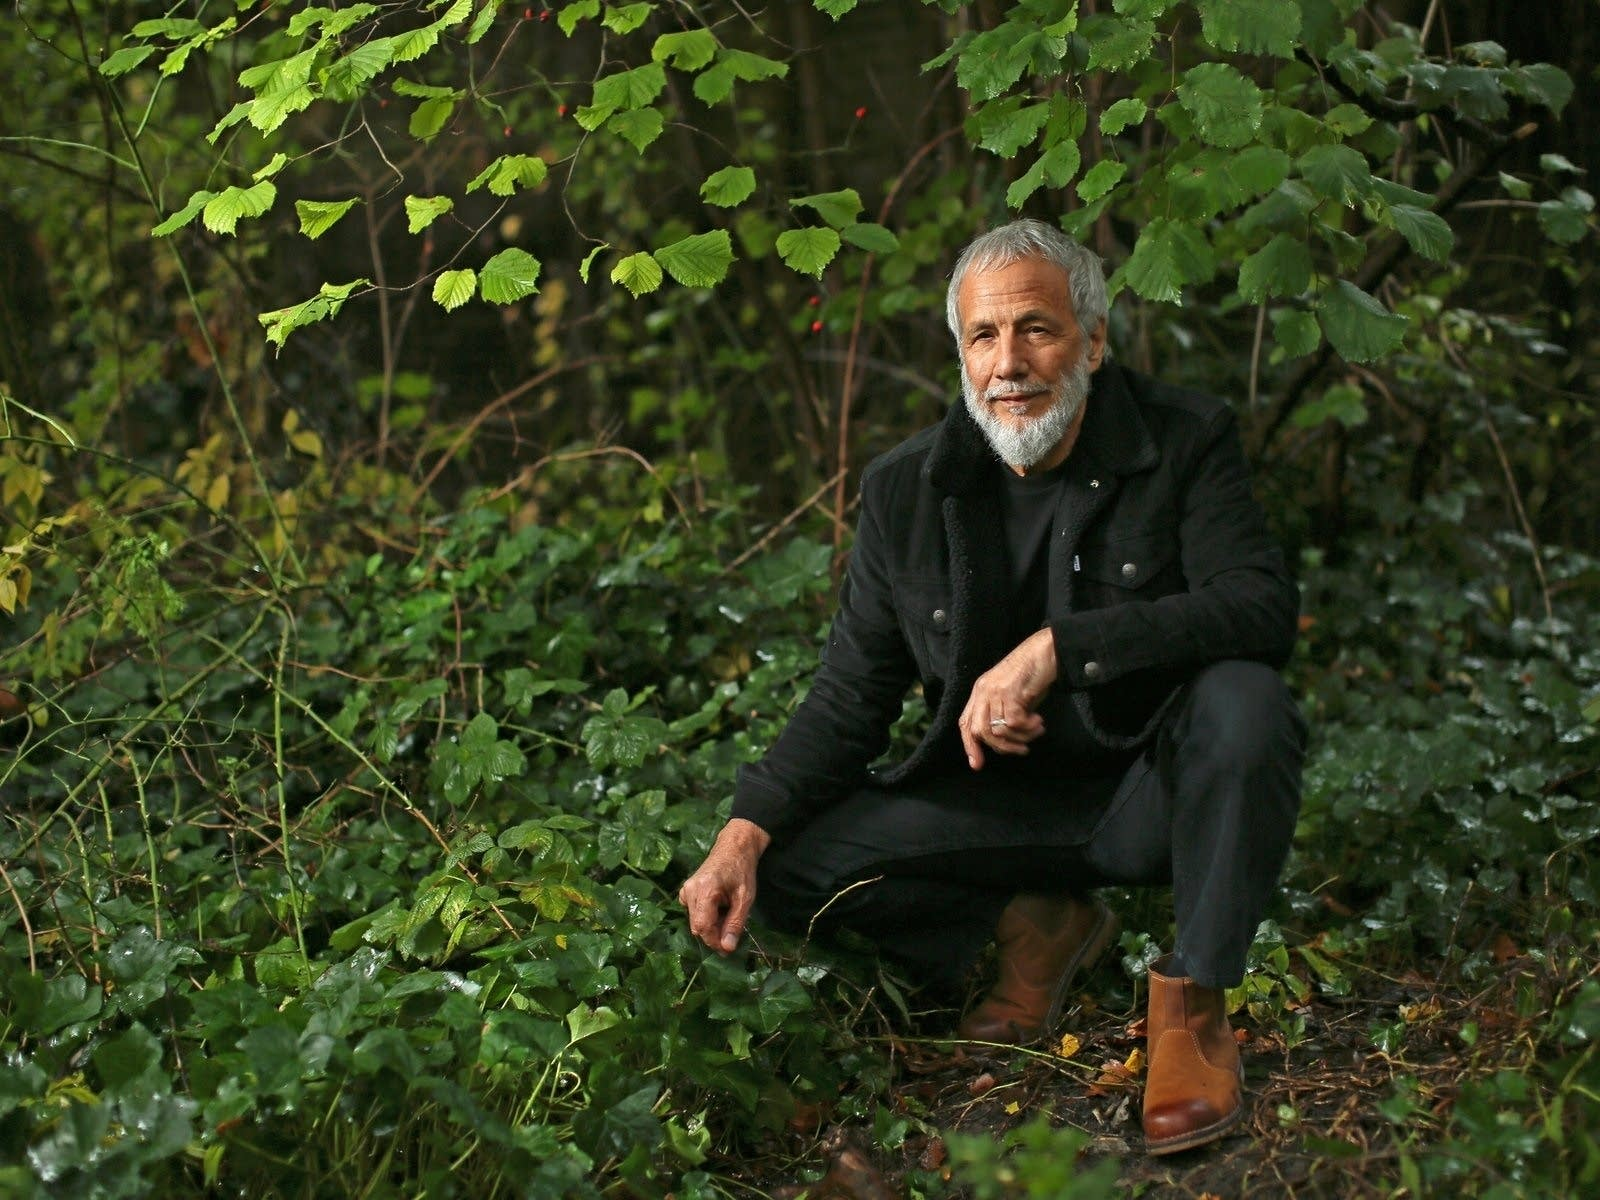 Yusuf Islam, formerly known as Cat Stevens